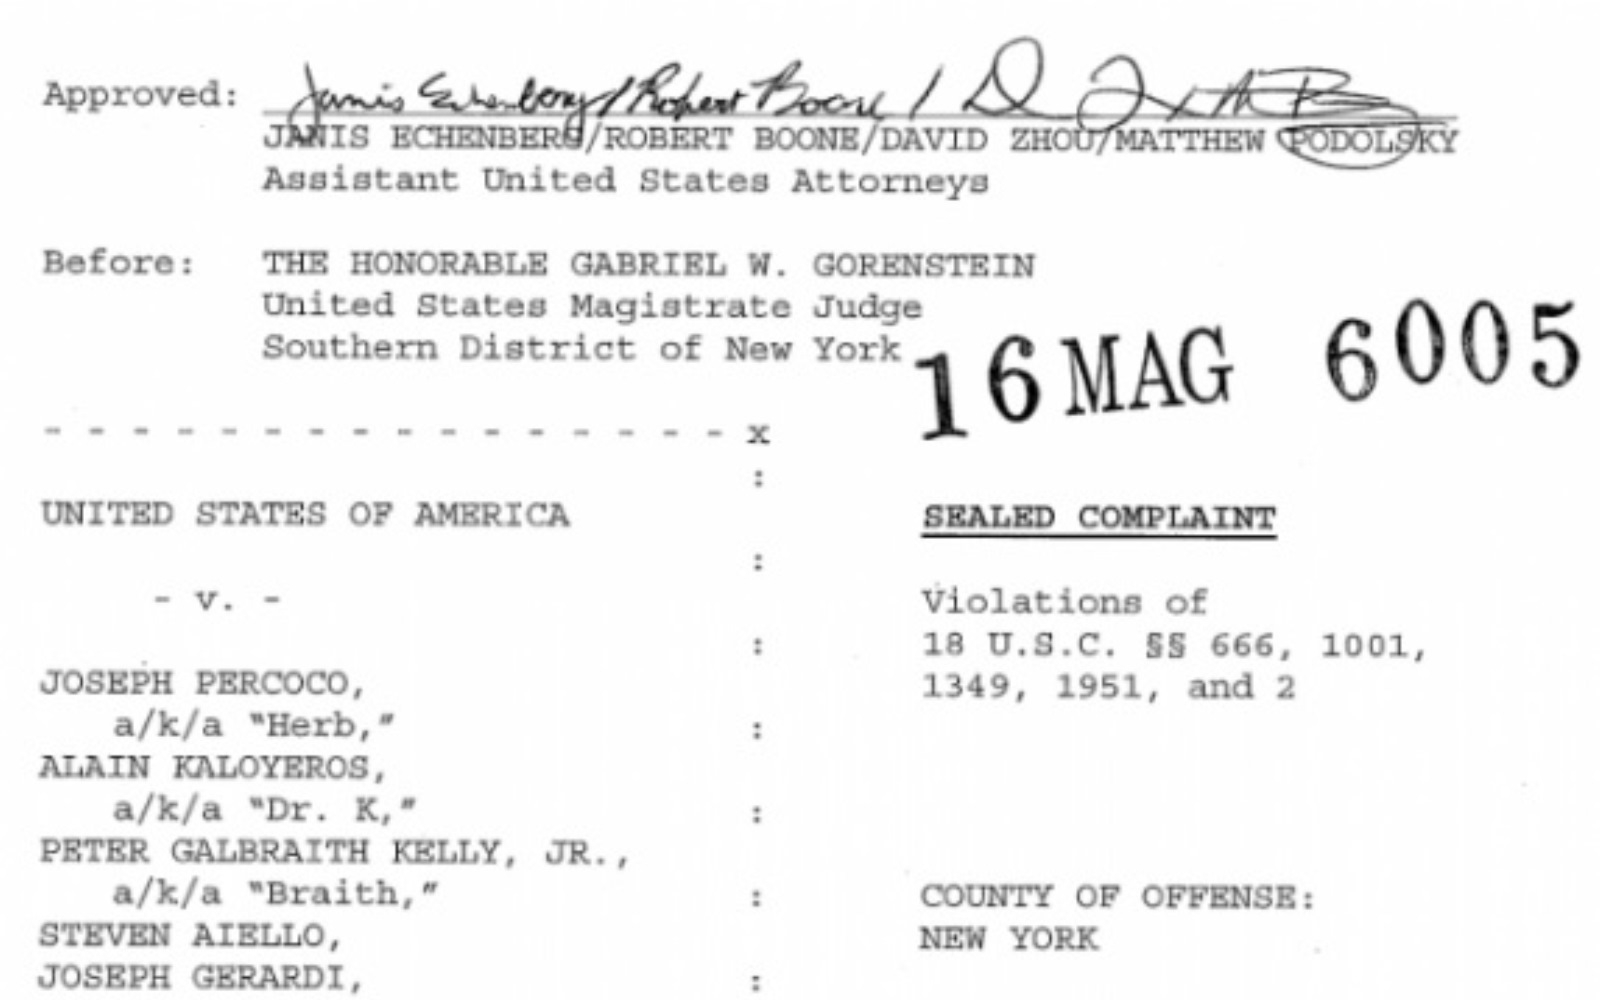 Key excerpts from the criminal complaint